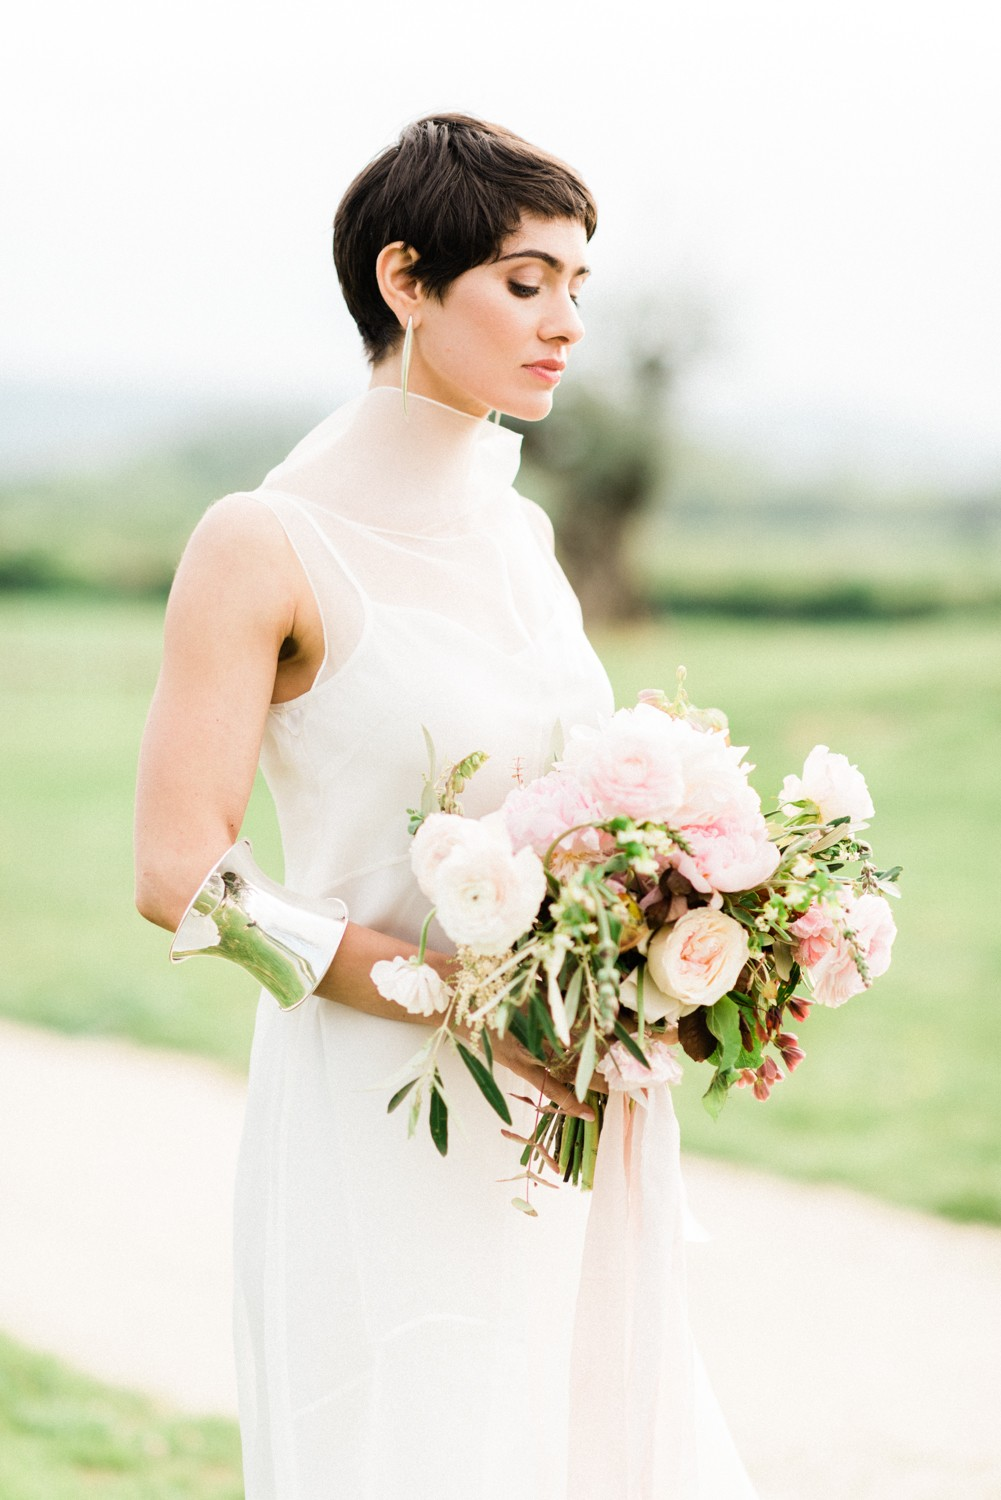 Short haired bride holding a bouquet of flowers